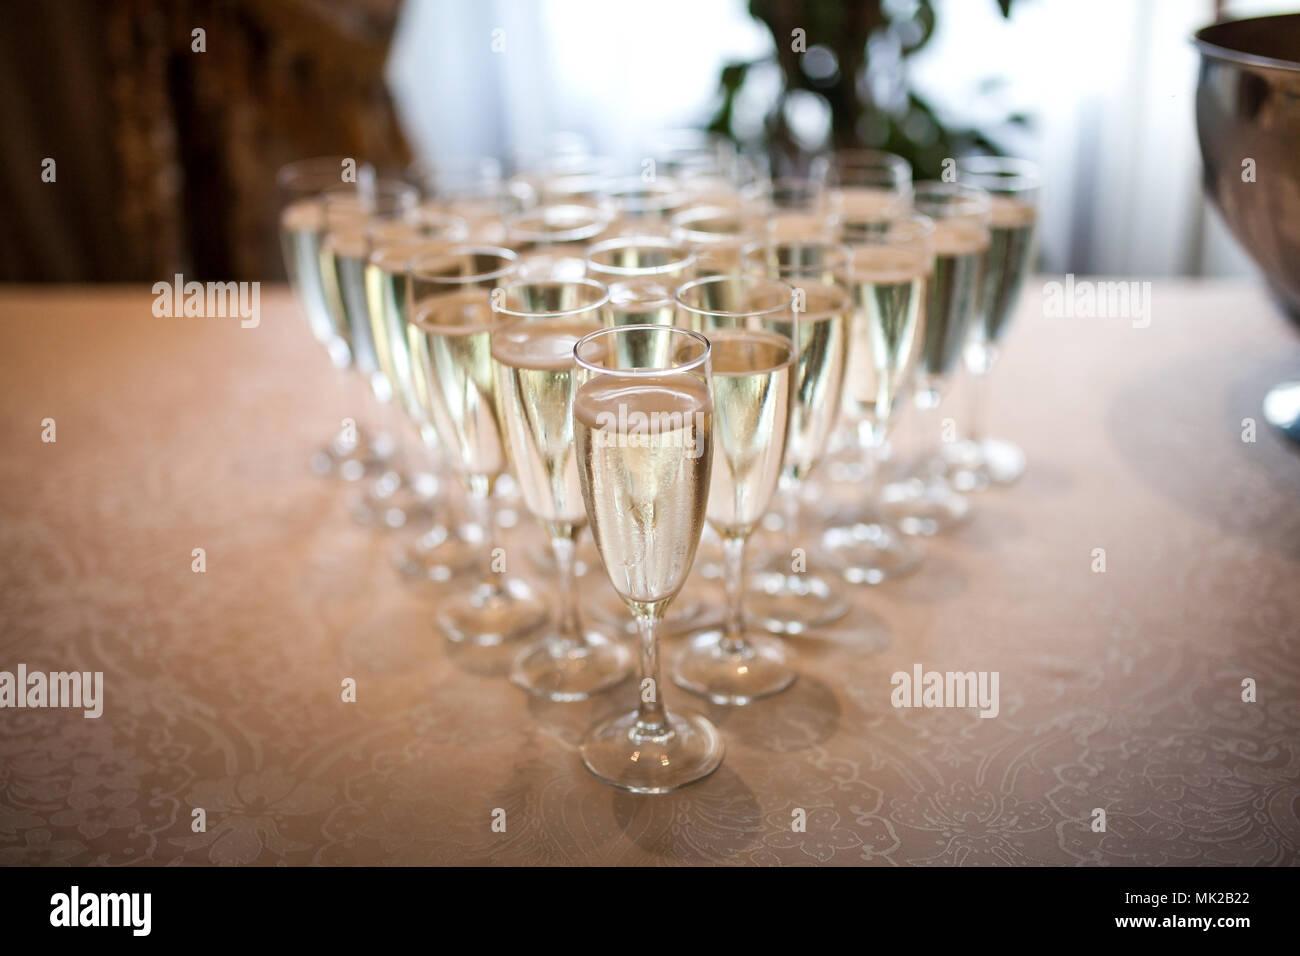 Glasses with champagne on the table - Stock Image